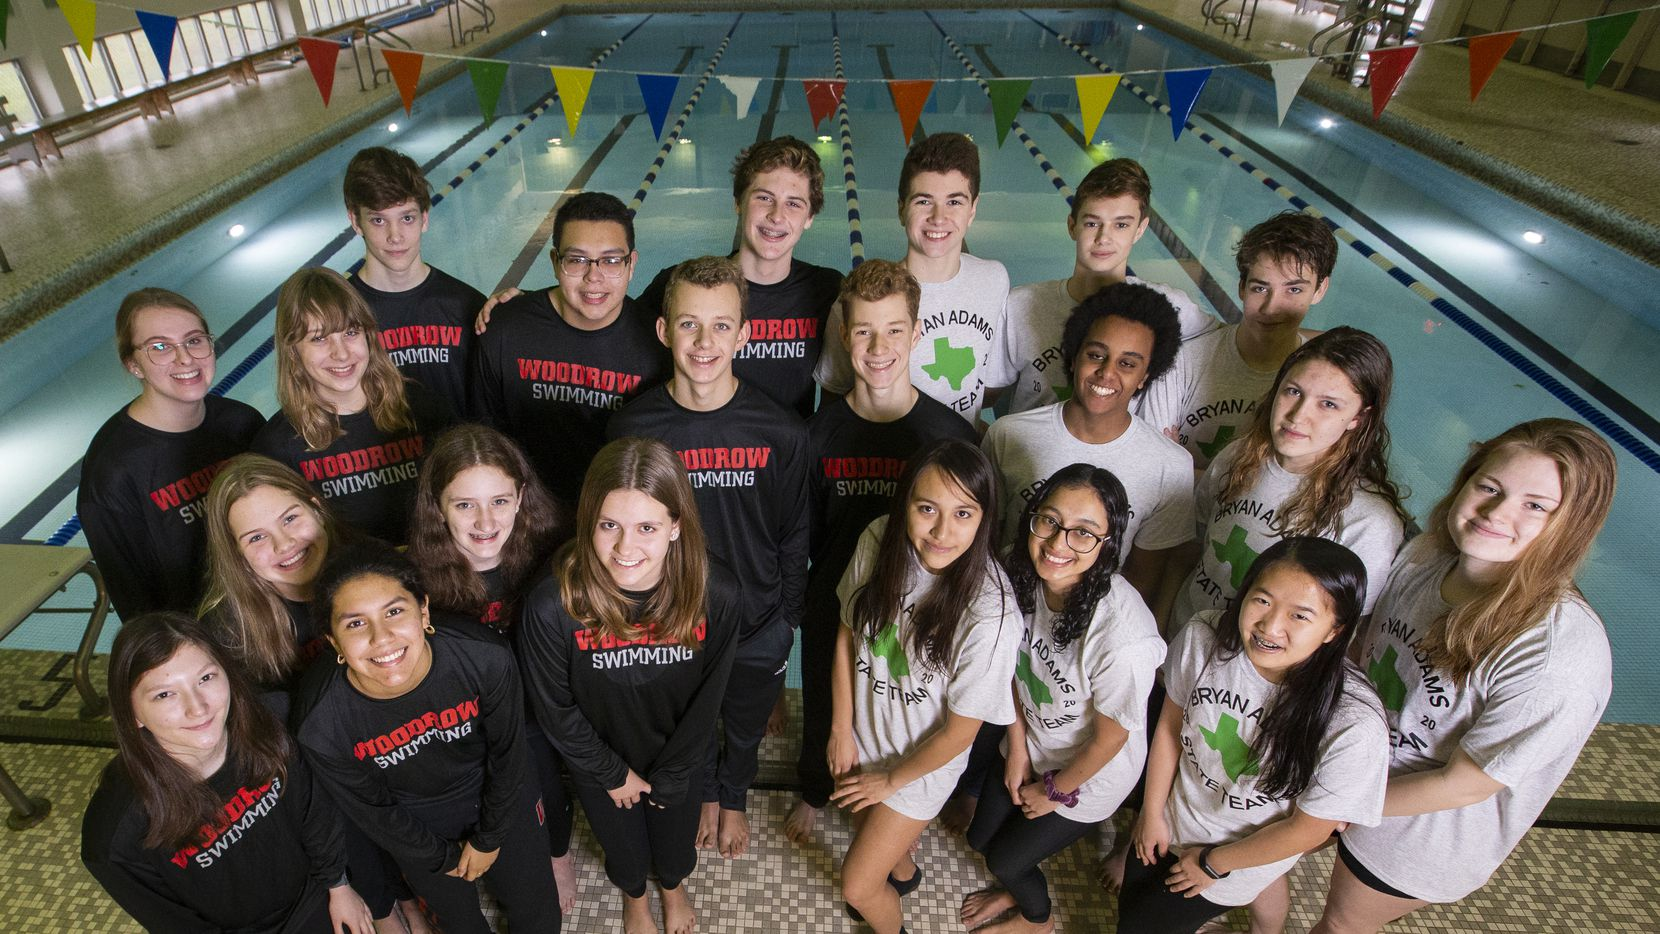 Swimmers from Woodrow Wilson and Bryan Adams High School who qualified for this weekend's UIL swimming and diving state meet pose for a photo at Alamo Swimming Pool on Feb. 13, 2020 in Dallas.